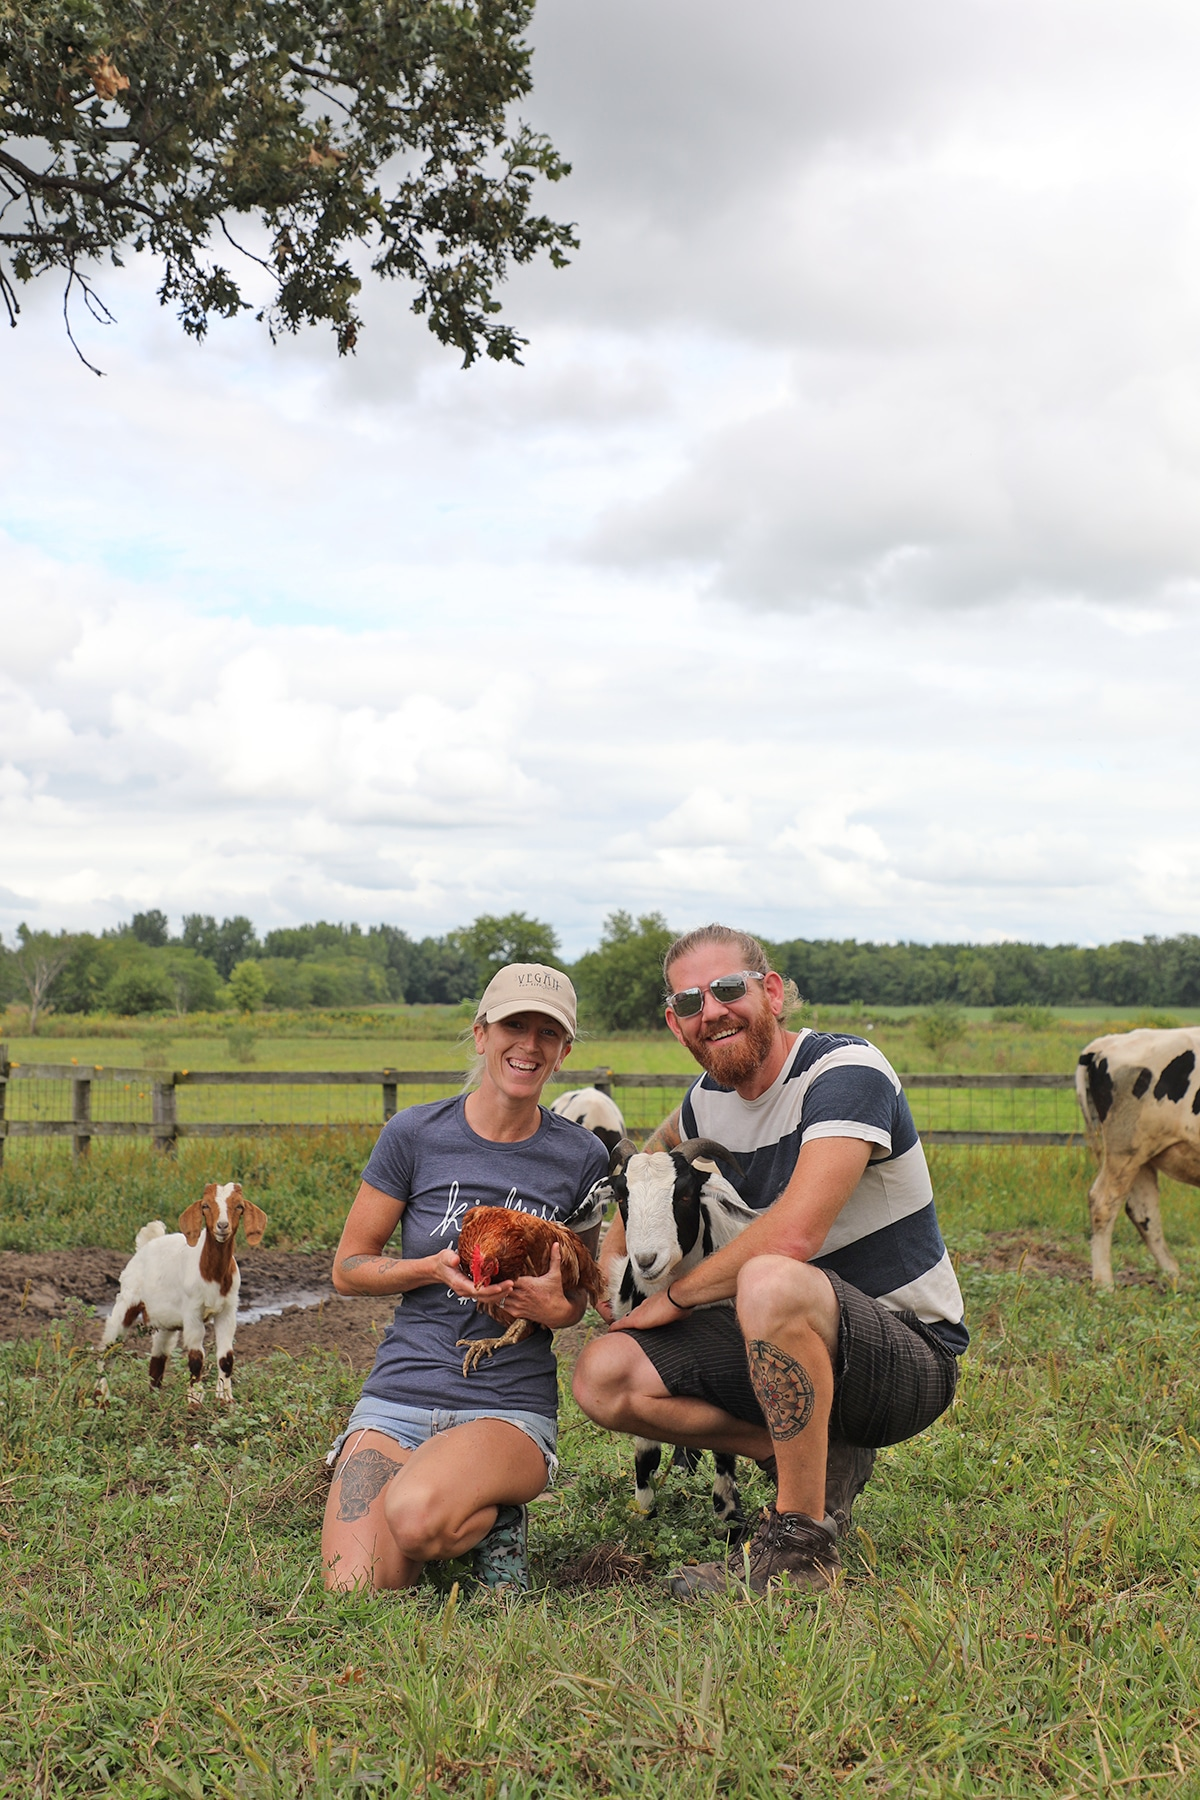 Shawn & Jered Camp standing with their rescued animal family at Iowa Farm Sanctuary.